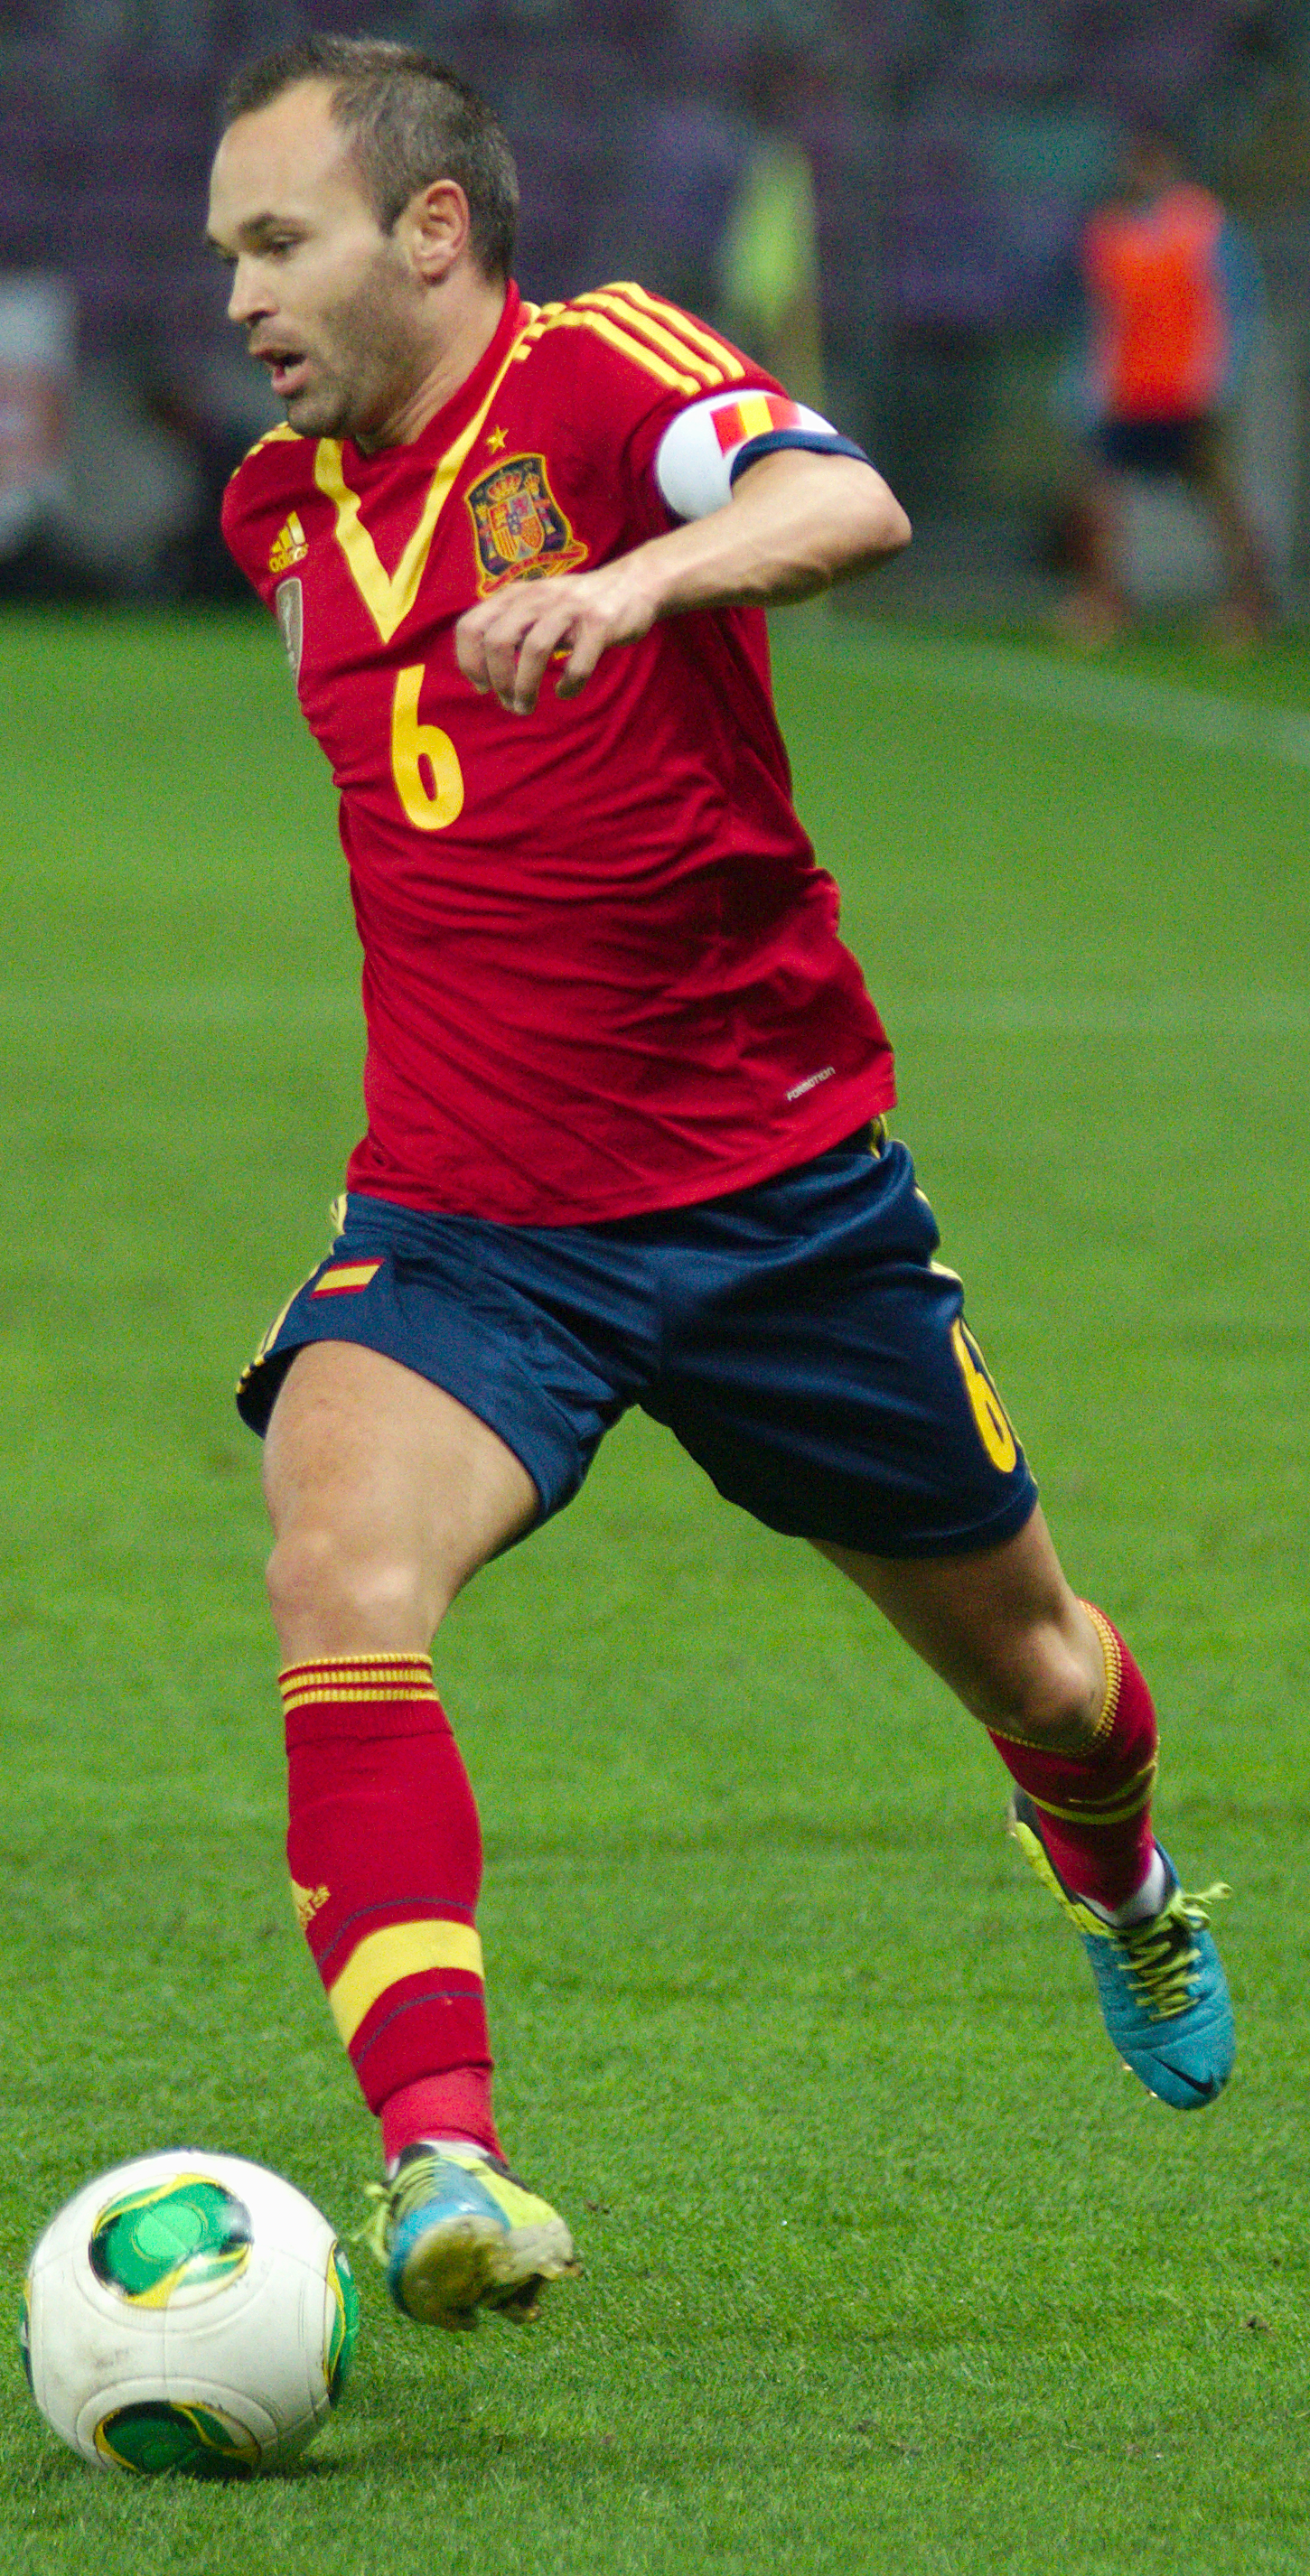 6ab75c88af8 Iniesta playing for Spain in September 2013.